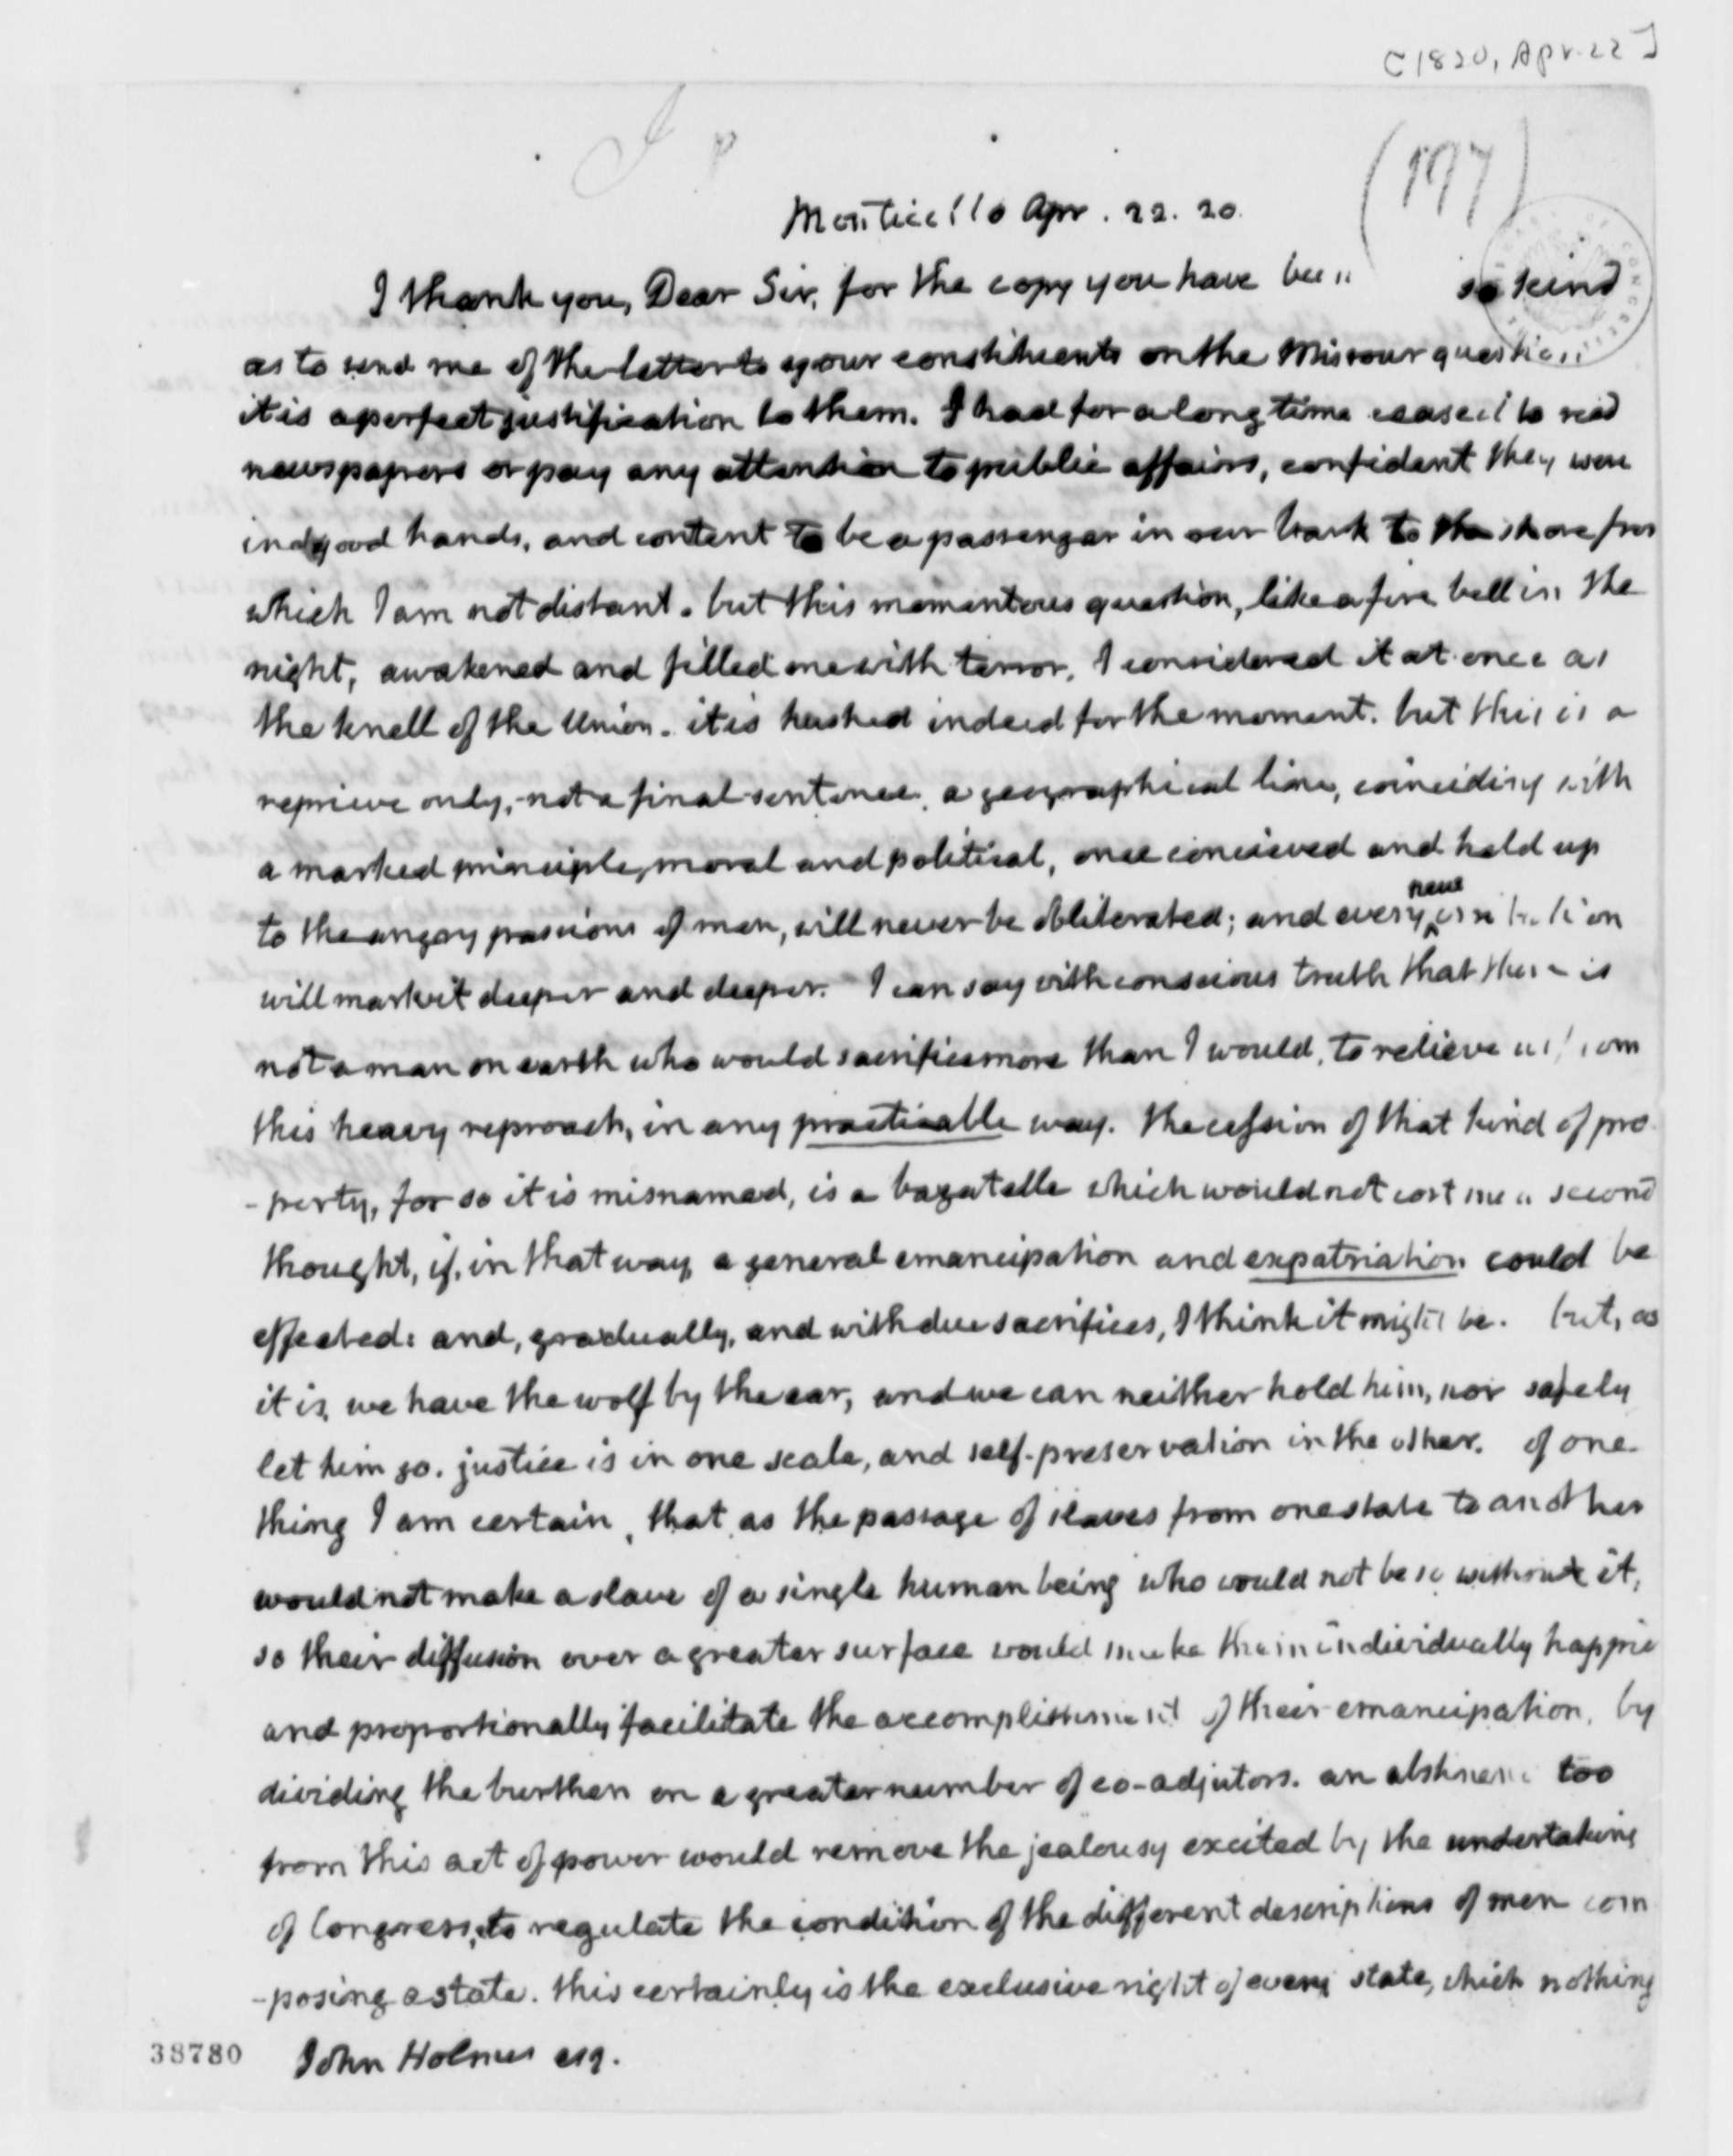 003 Thomas Jefferson Essay Example Magnificent Questions High School Sample Full